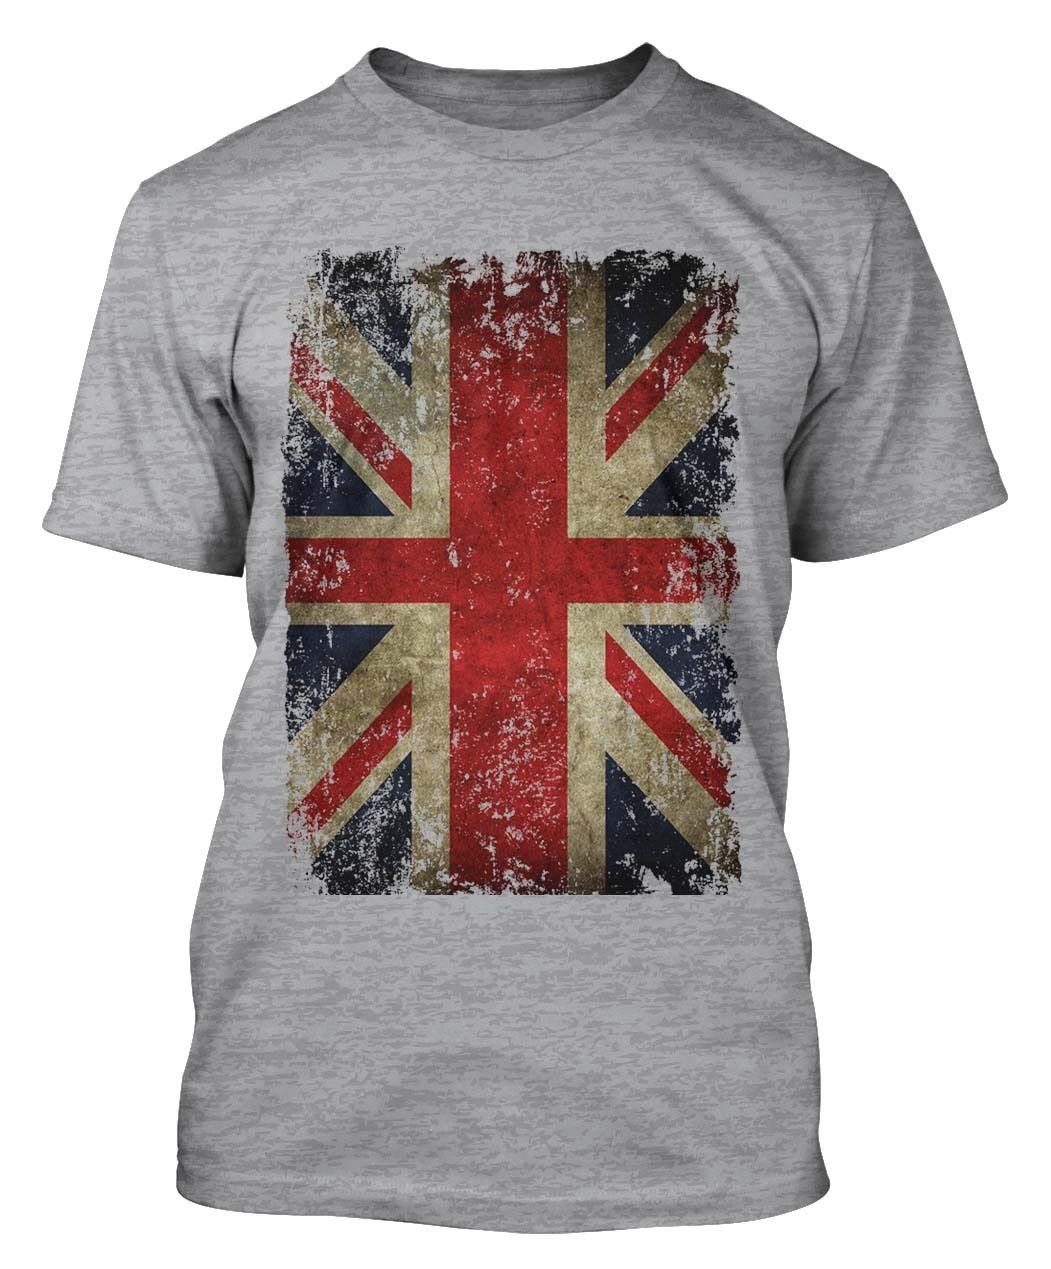 UNION JACK T-SHIRT DISTRESSED GRUNGE VINTAGE UK BRITISH FLAG GREAT BRITAIN Summer Short  ...